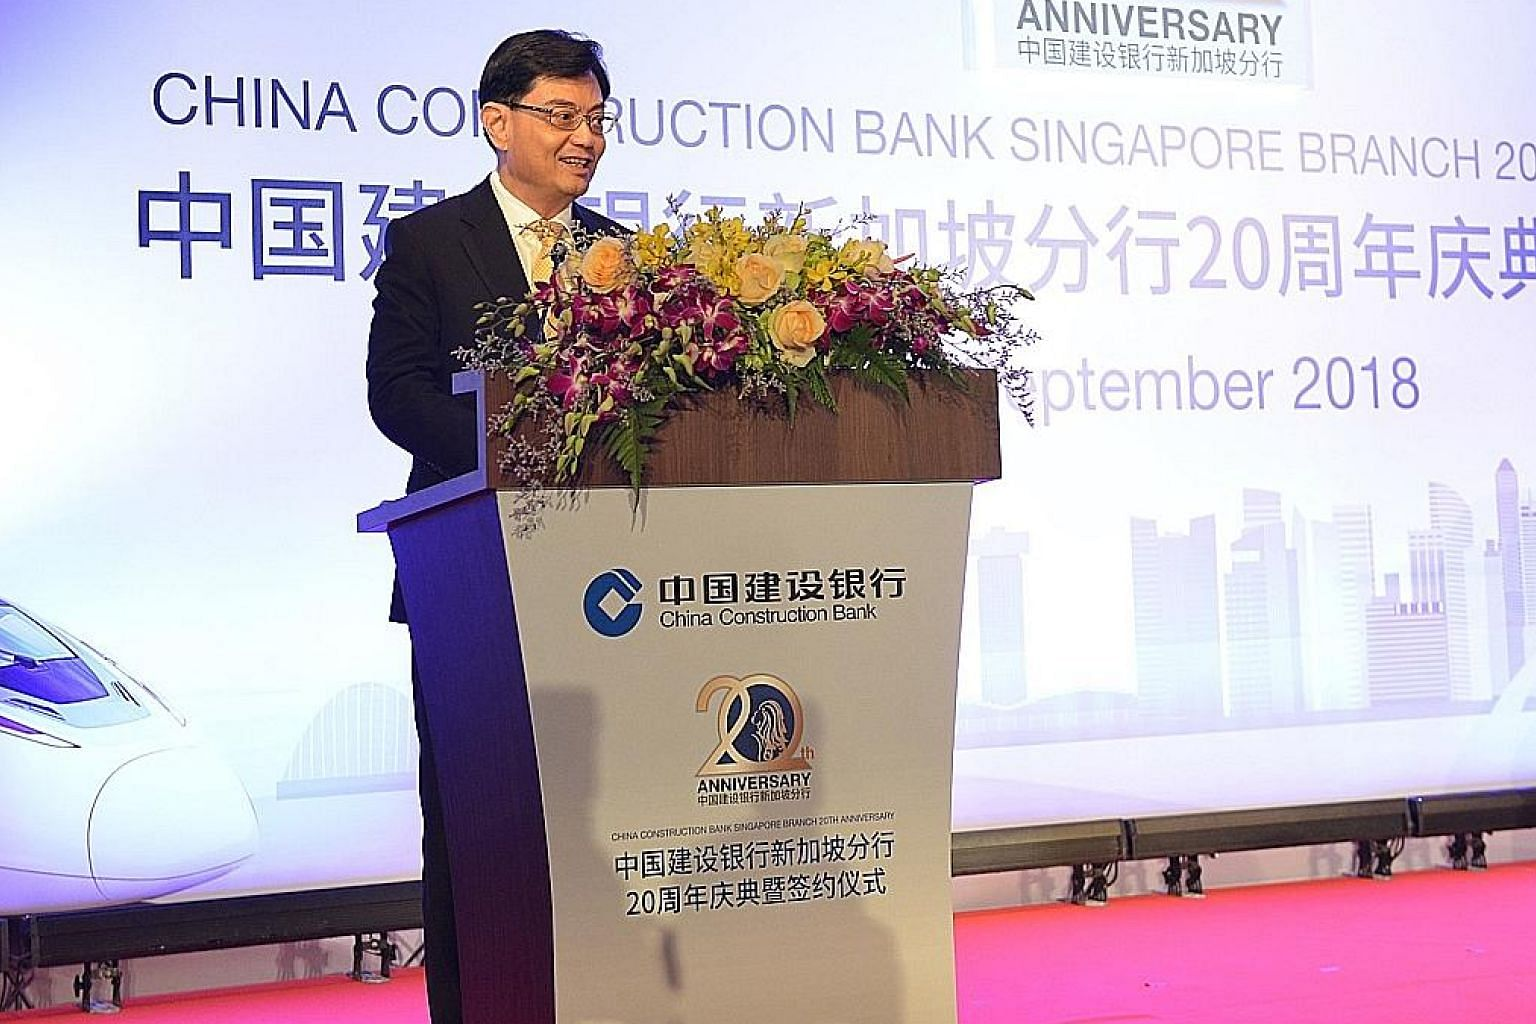 Finance Minister Heng Swee Keat speaking at China Construction Bank Singapore's 20th anniversary event yesterday.